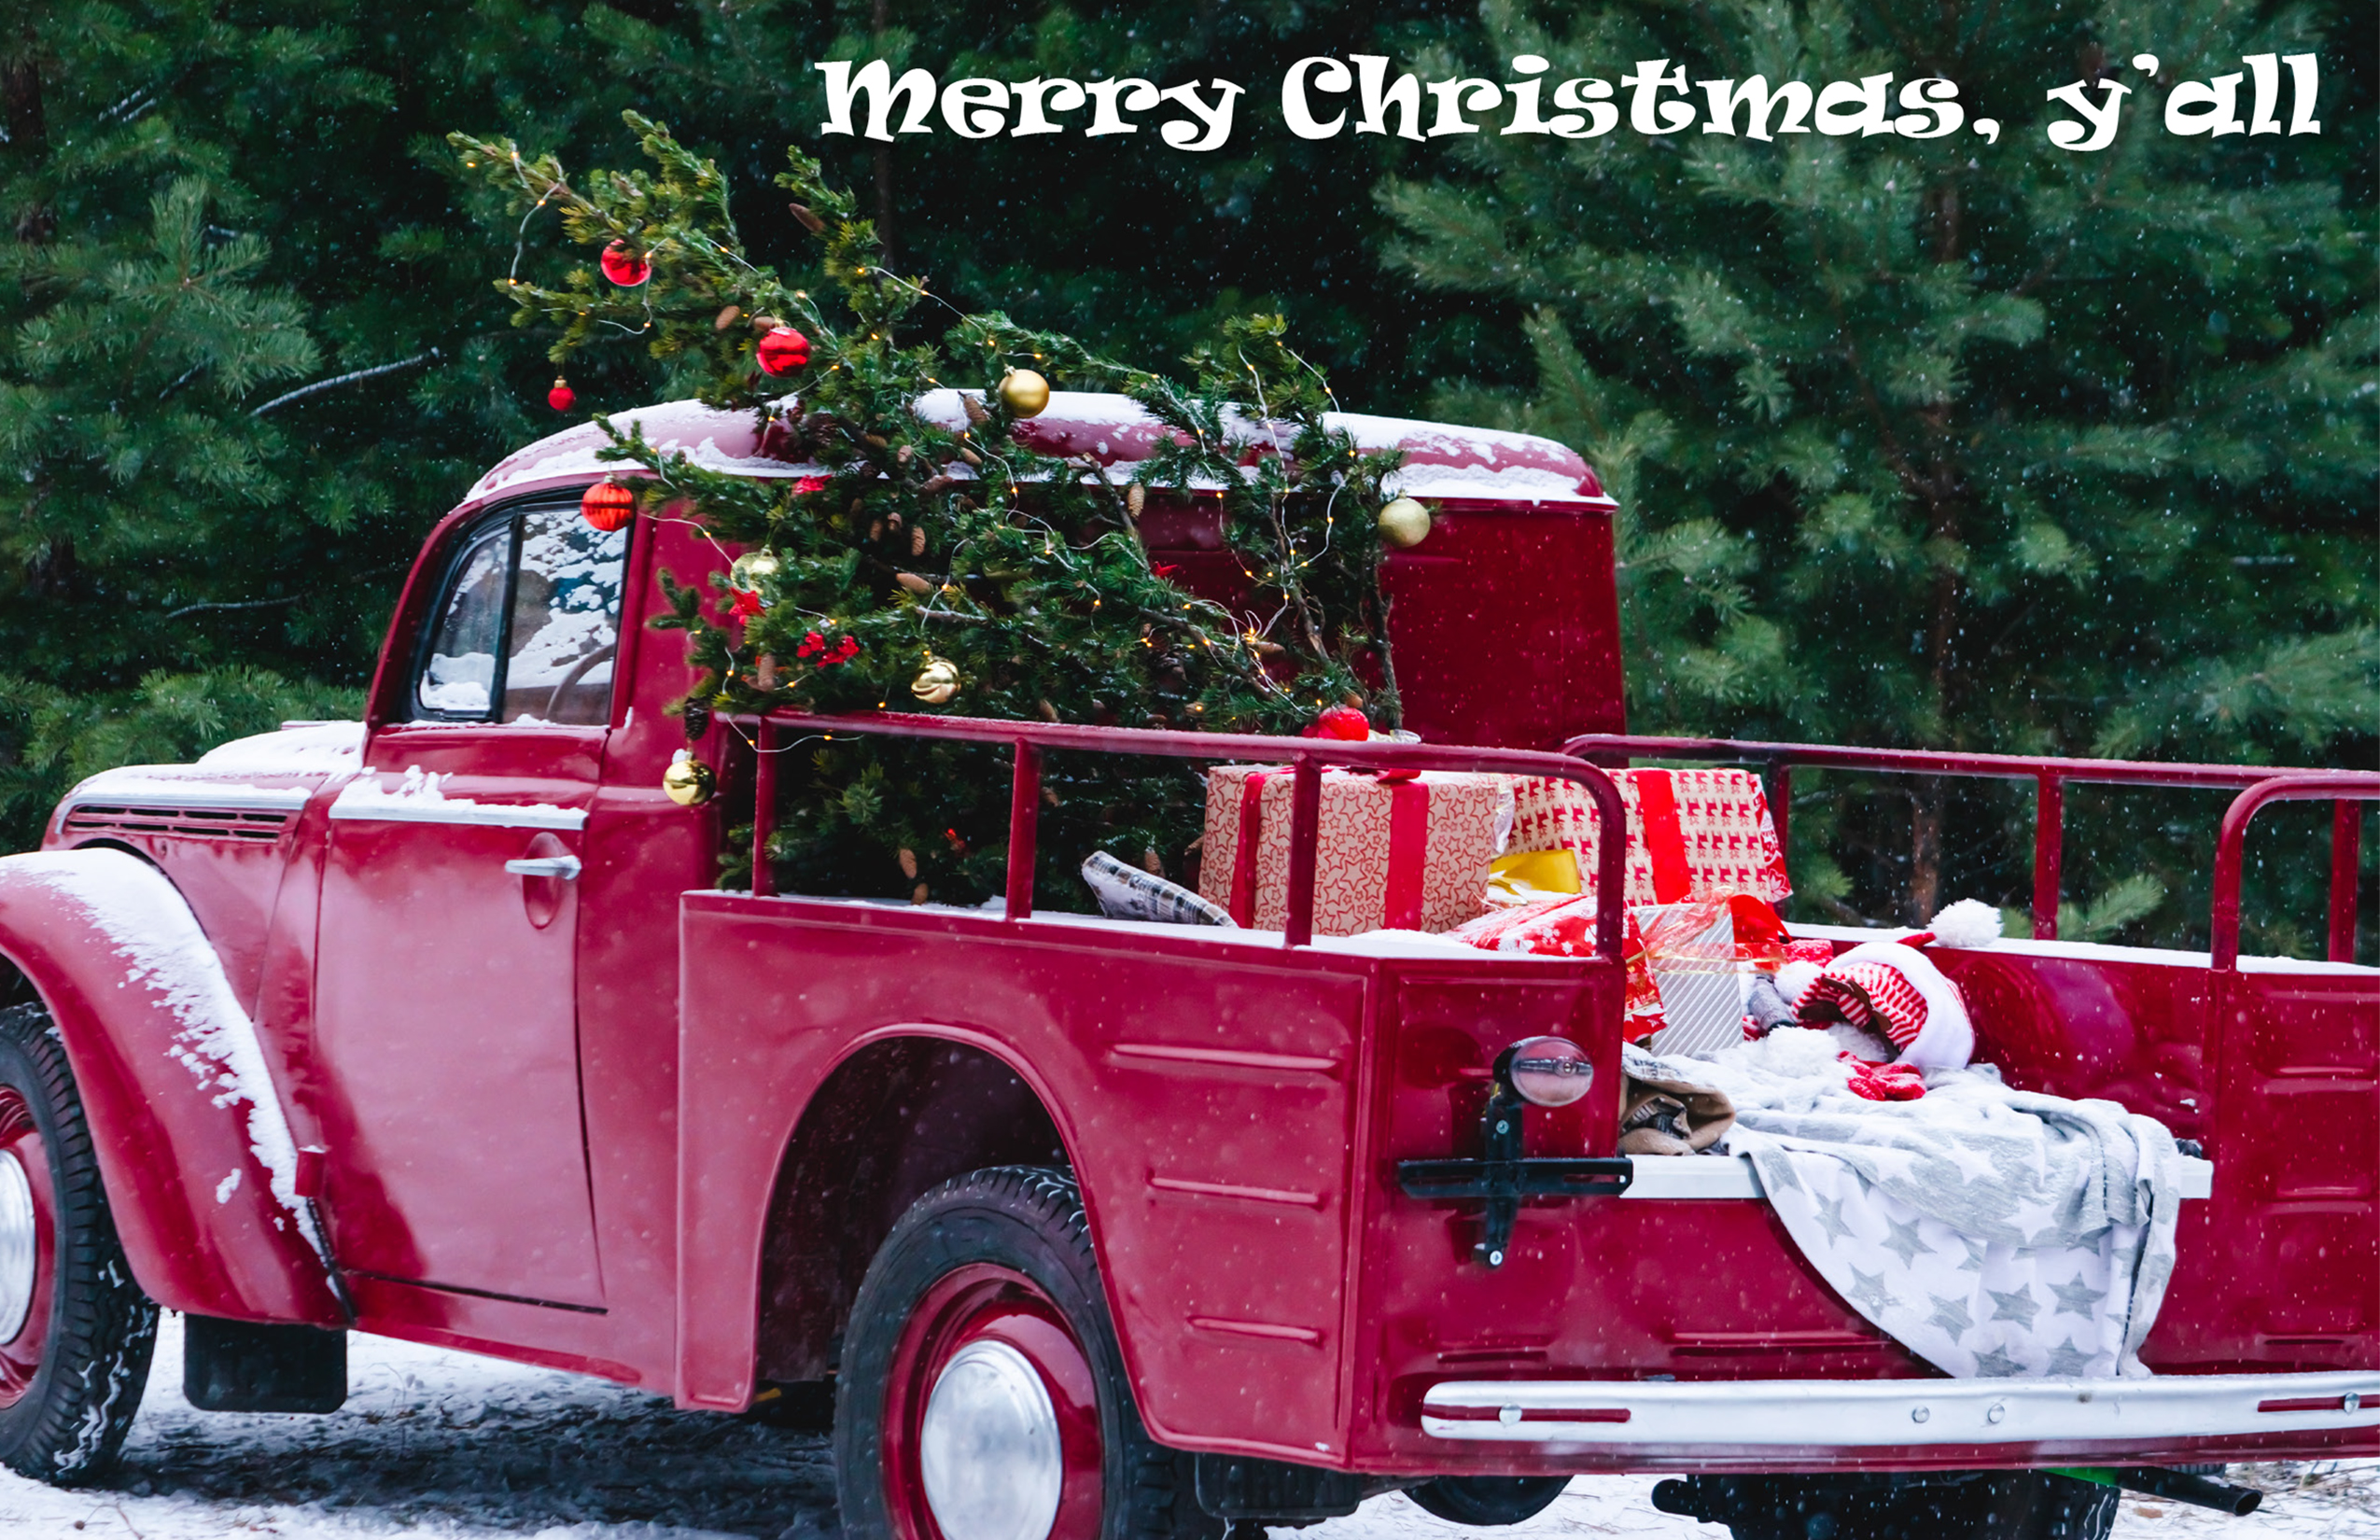 2020 Merry Christmas Y'all Truck Greeting Card